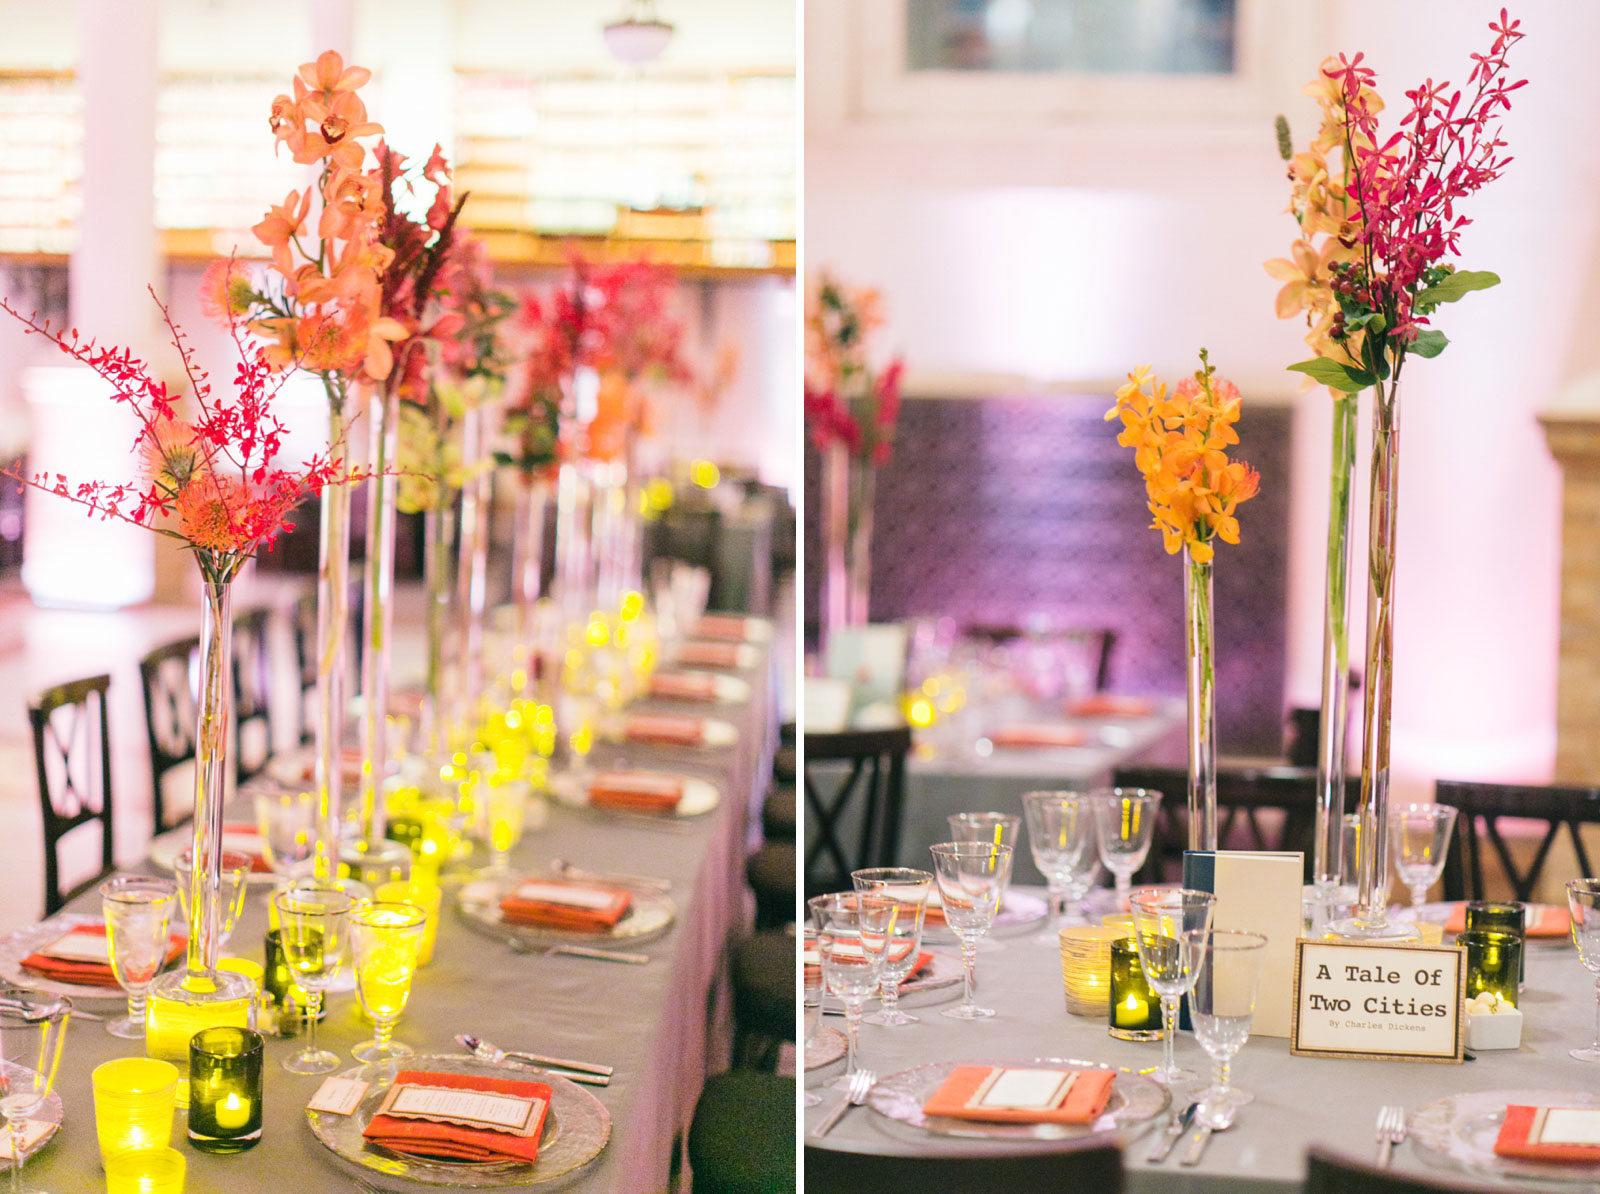 Tablescapes are decorated with bright orange and pink florals, and book-themed centerpieces